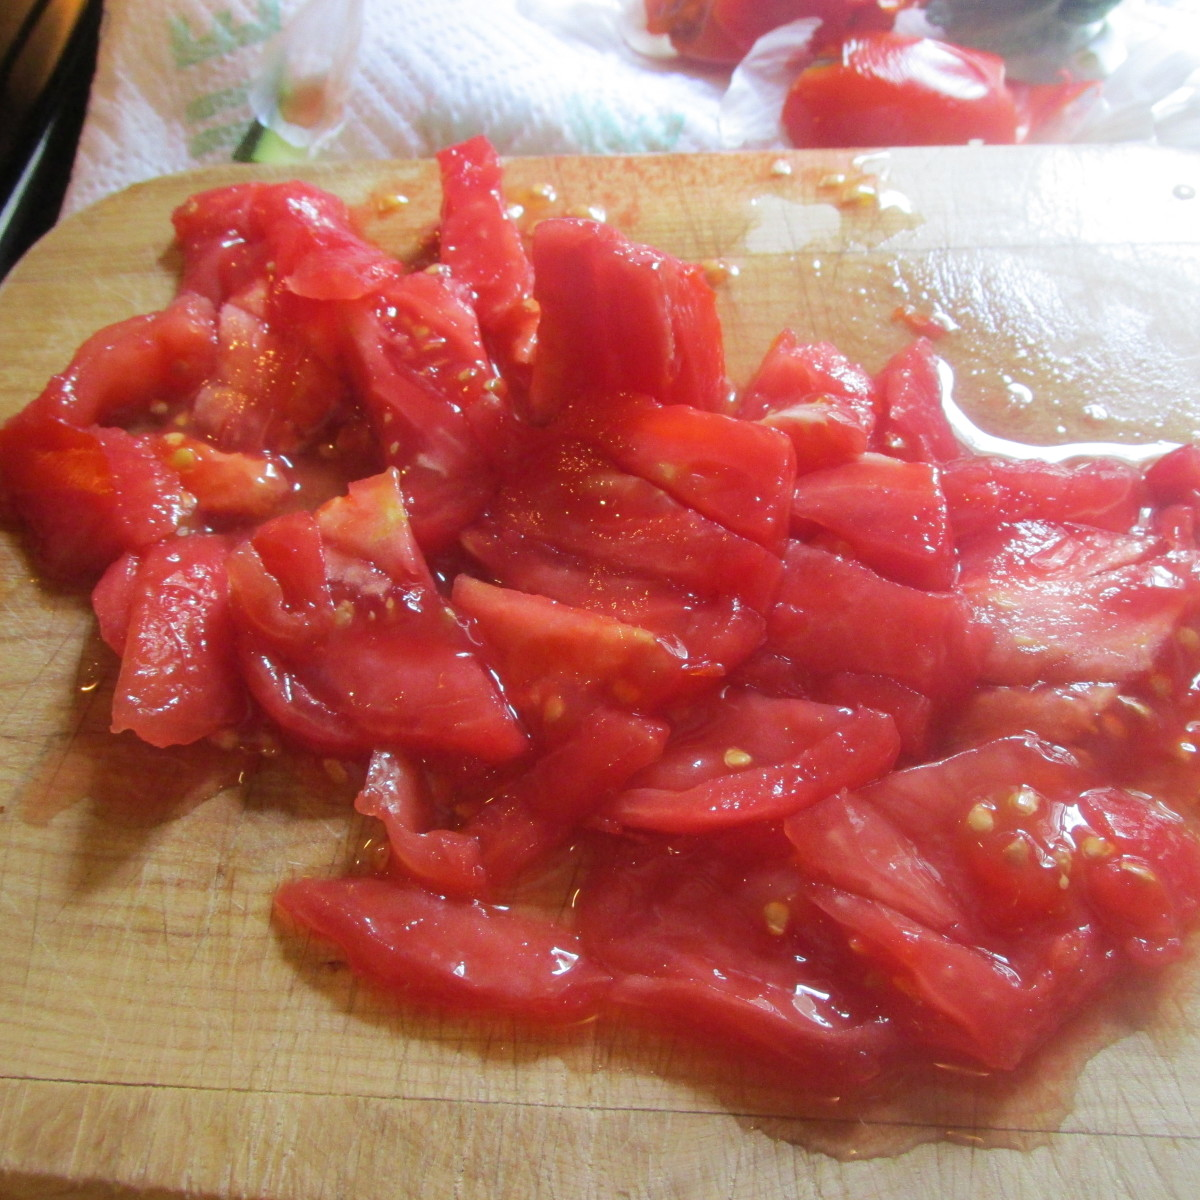 Tomatoes peeled and chopped.